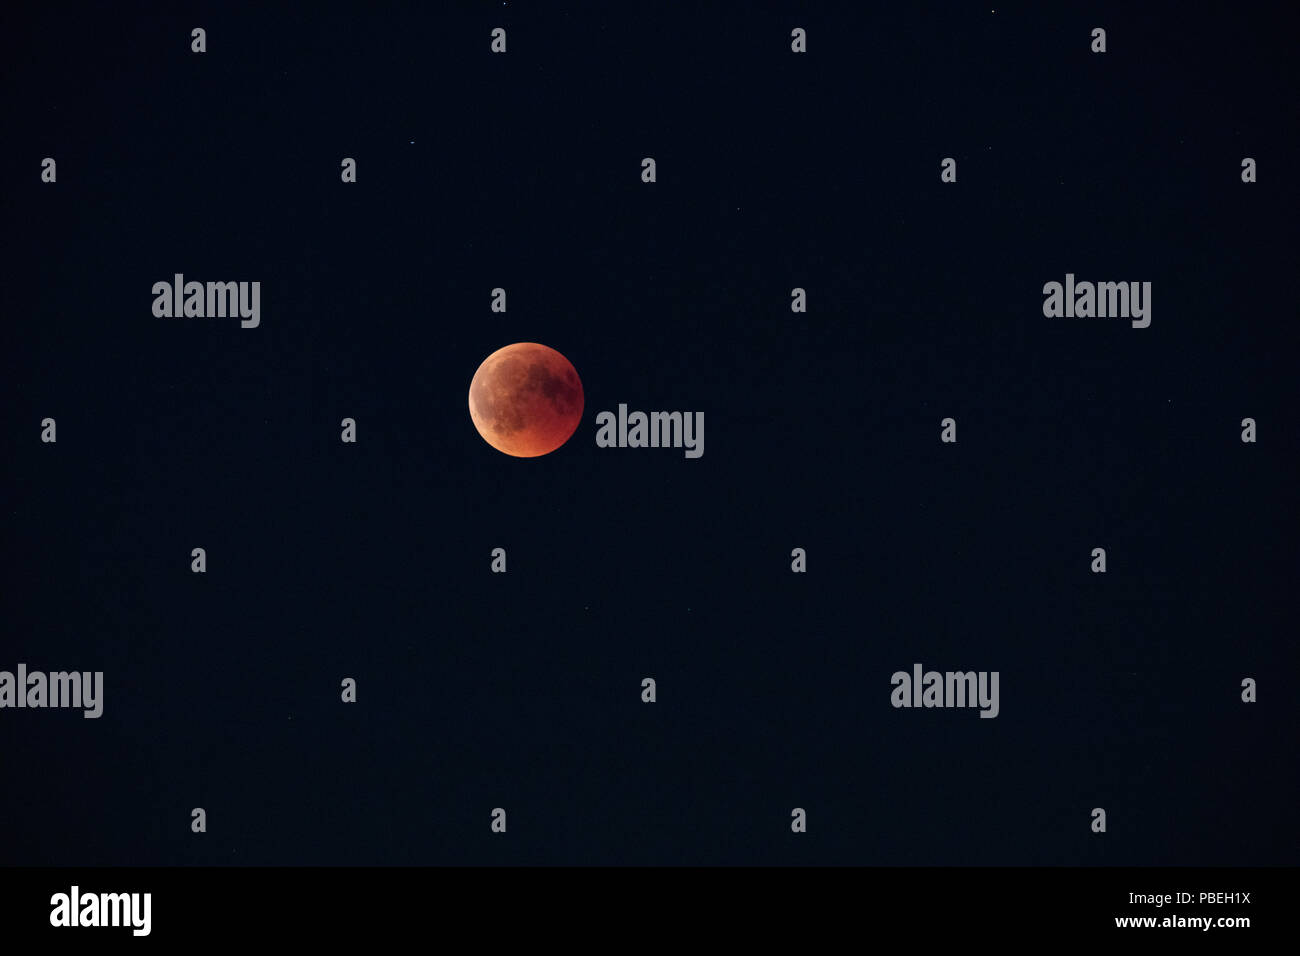 Düsseldorf, Germany. 27th July 2018. Moon Eclipse over Düsseldorf Credit: Jochen Brood/Alamy Live News - Stock Image